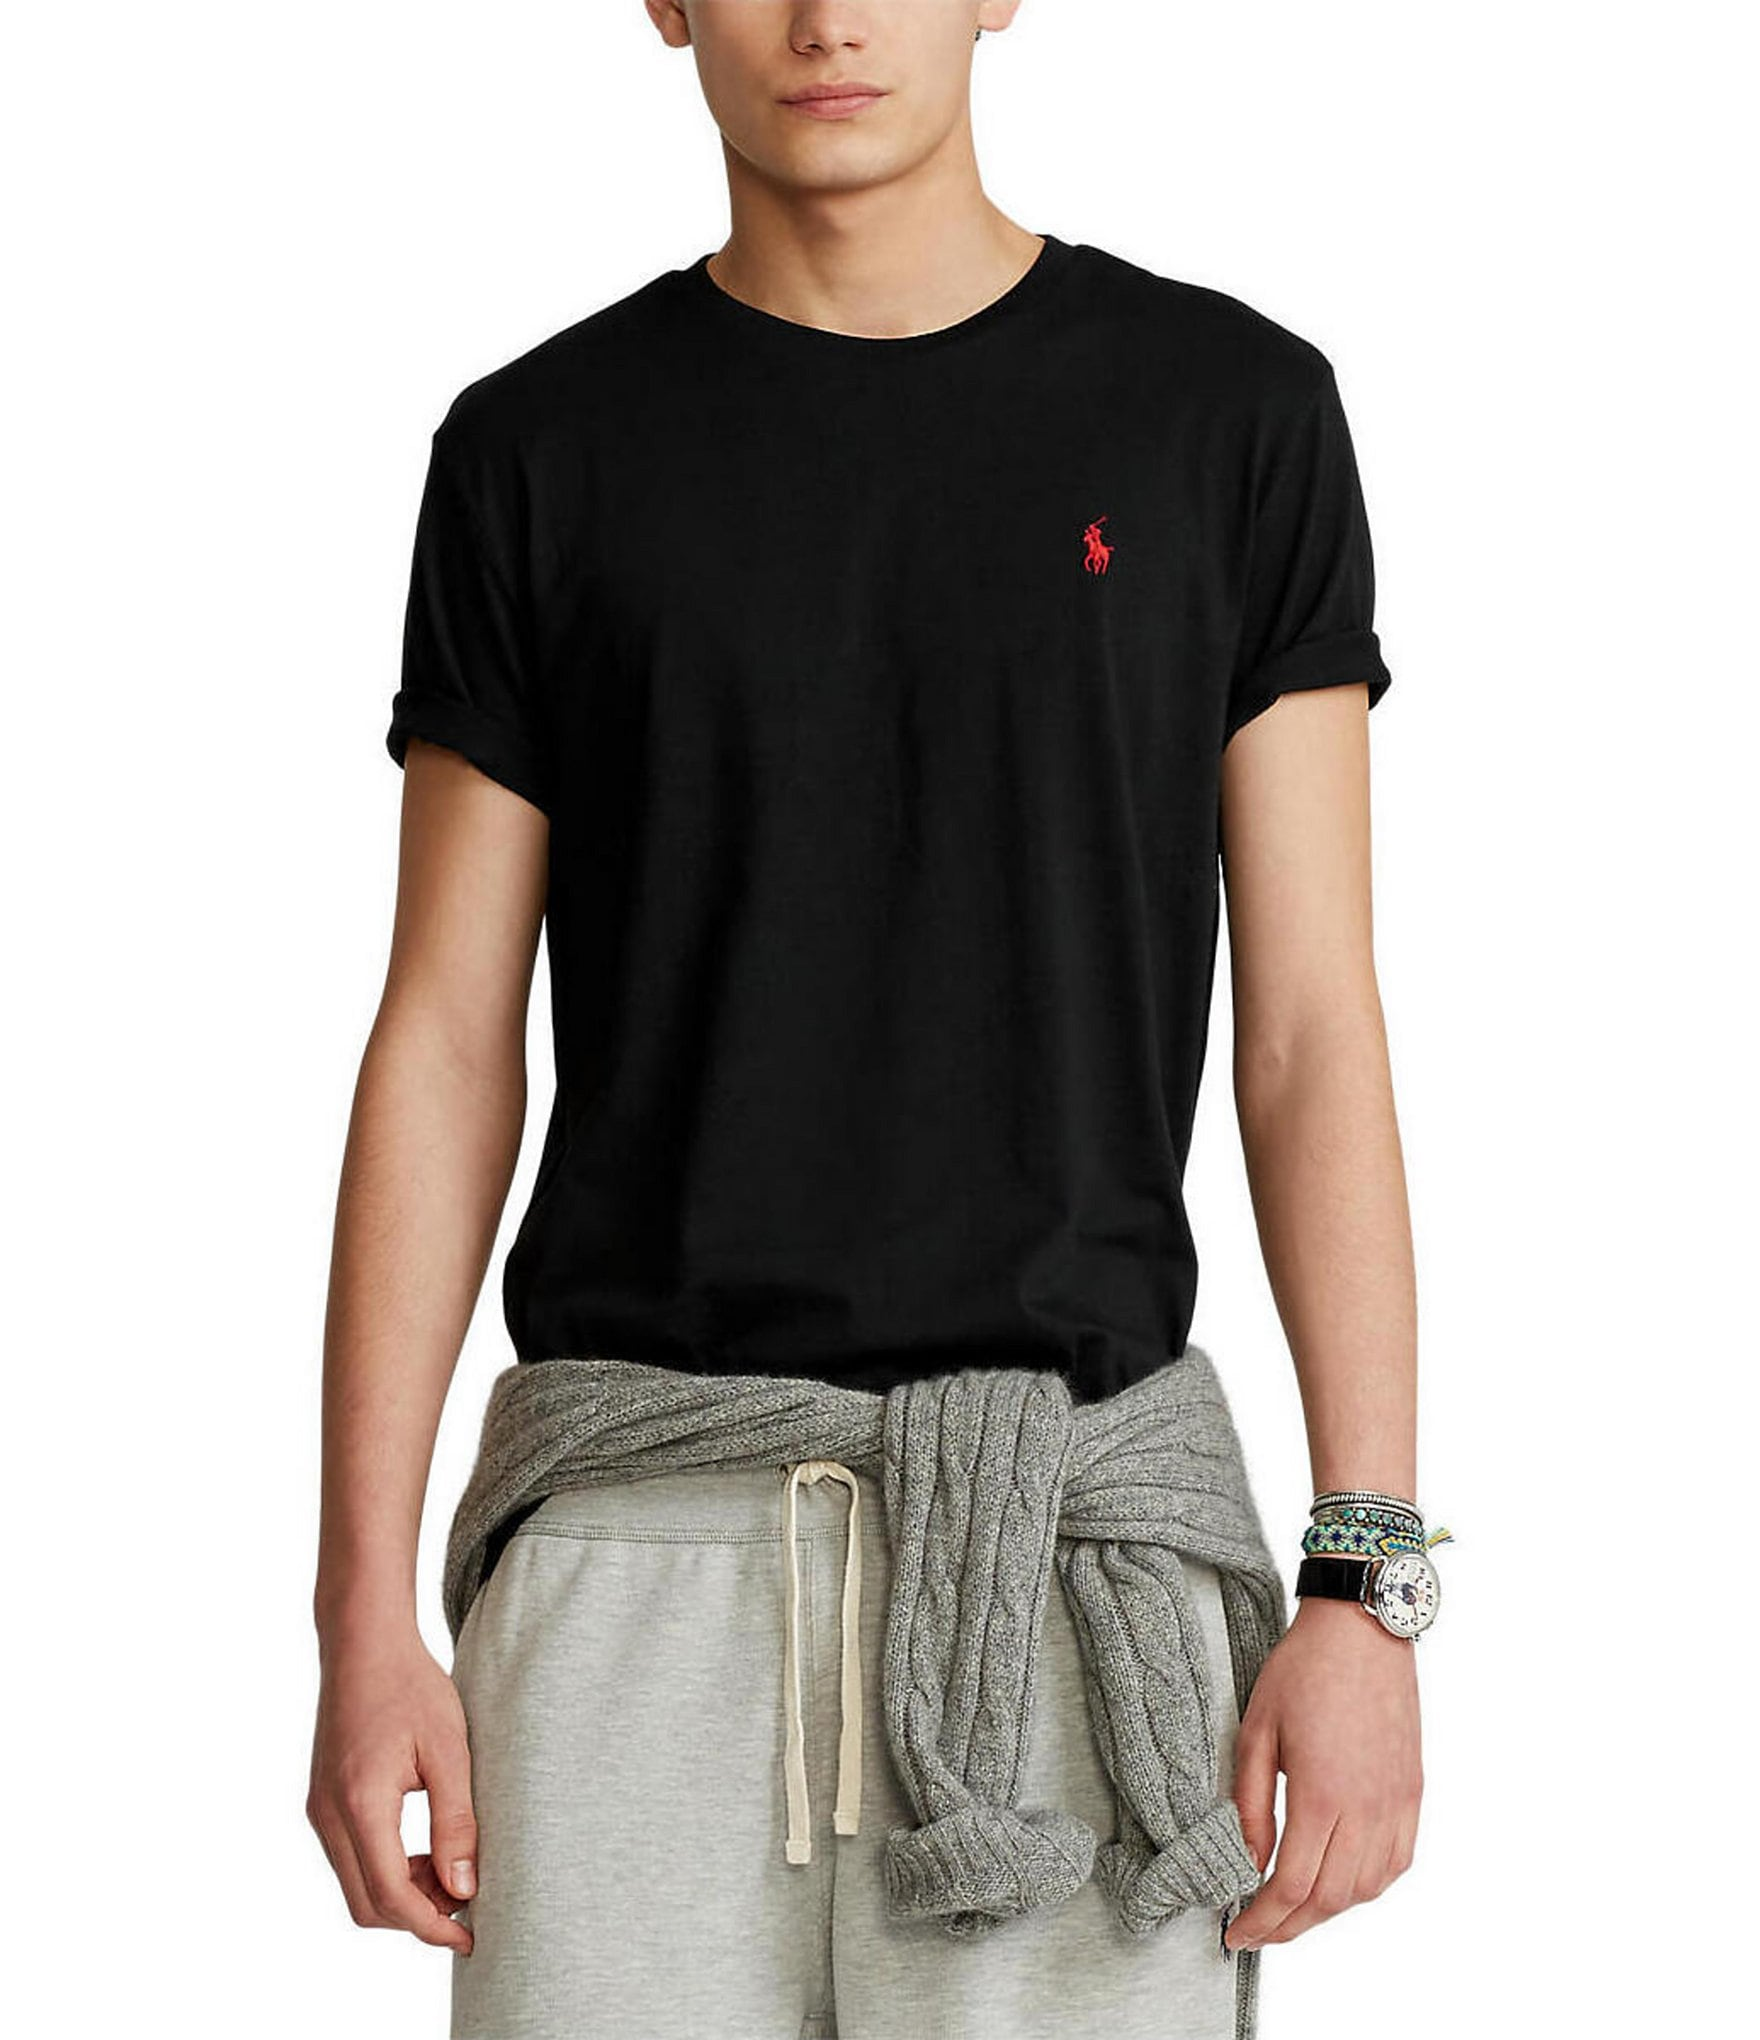 330c4857 3xb Polo T Shirts